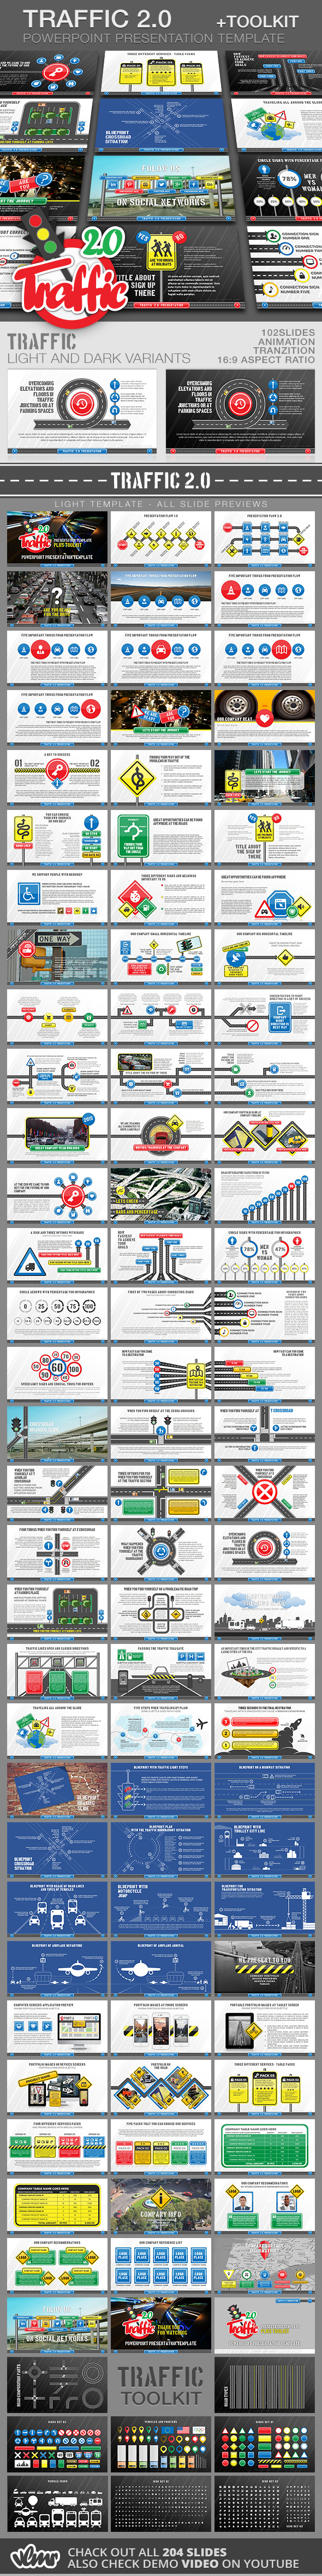 Traffic 2.0 PP Presentation Template + Toolkit - Creative PowerPoint Templates